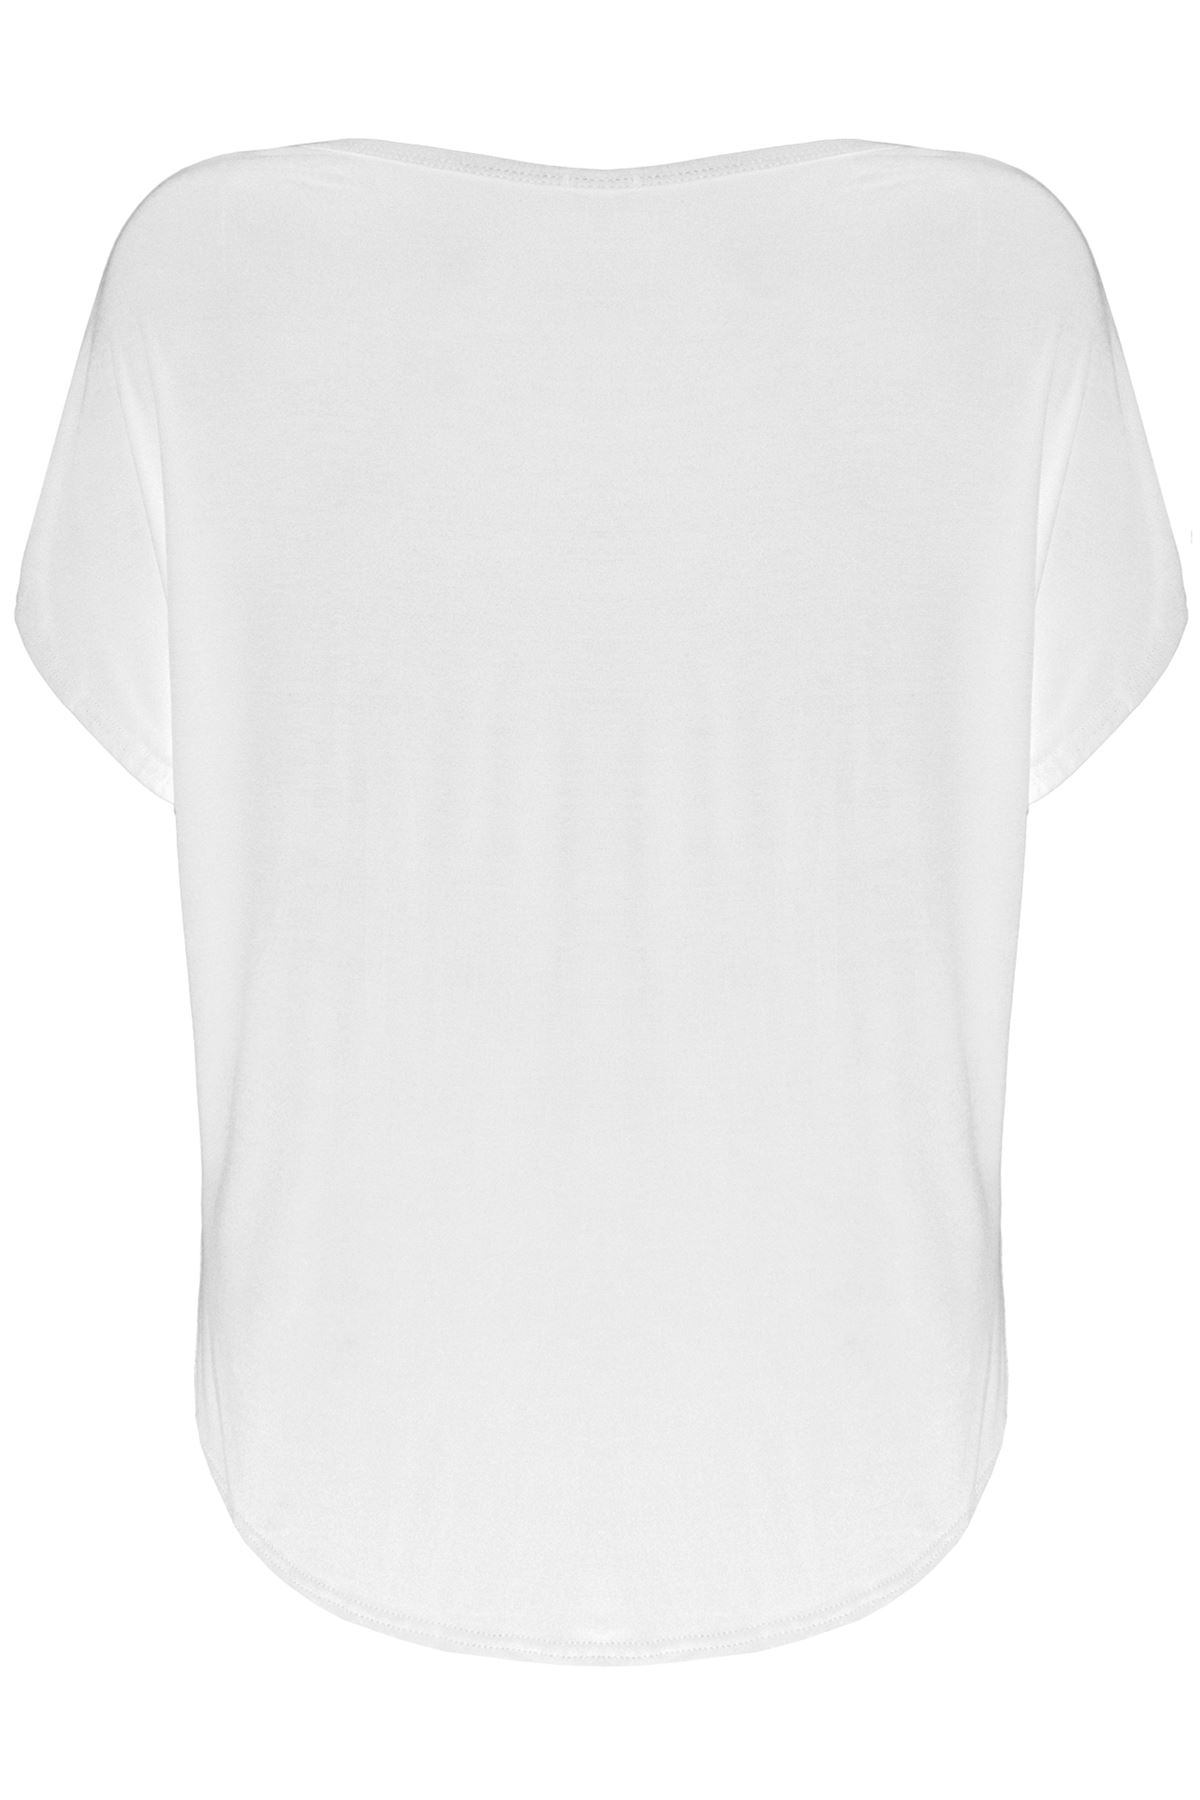 Plus Size Ladies Womens Sorry I am Late  Baggy Lagenlook Oversized T-Shirt Top